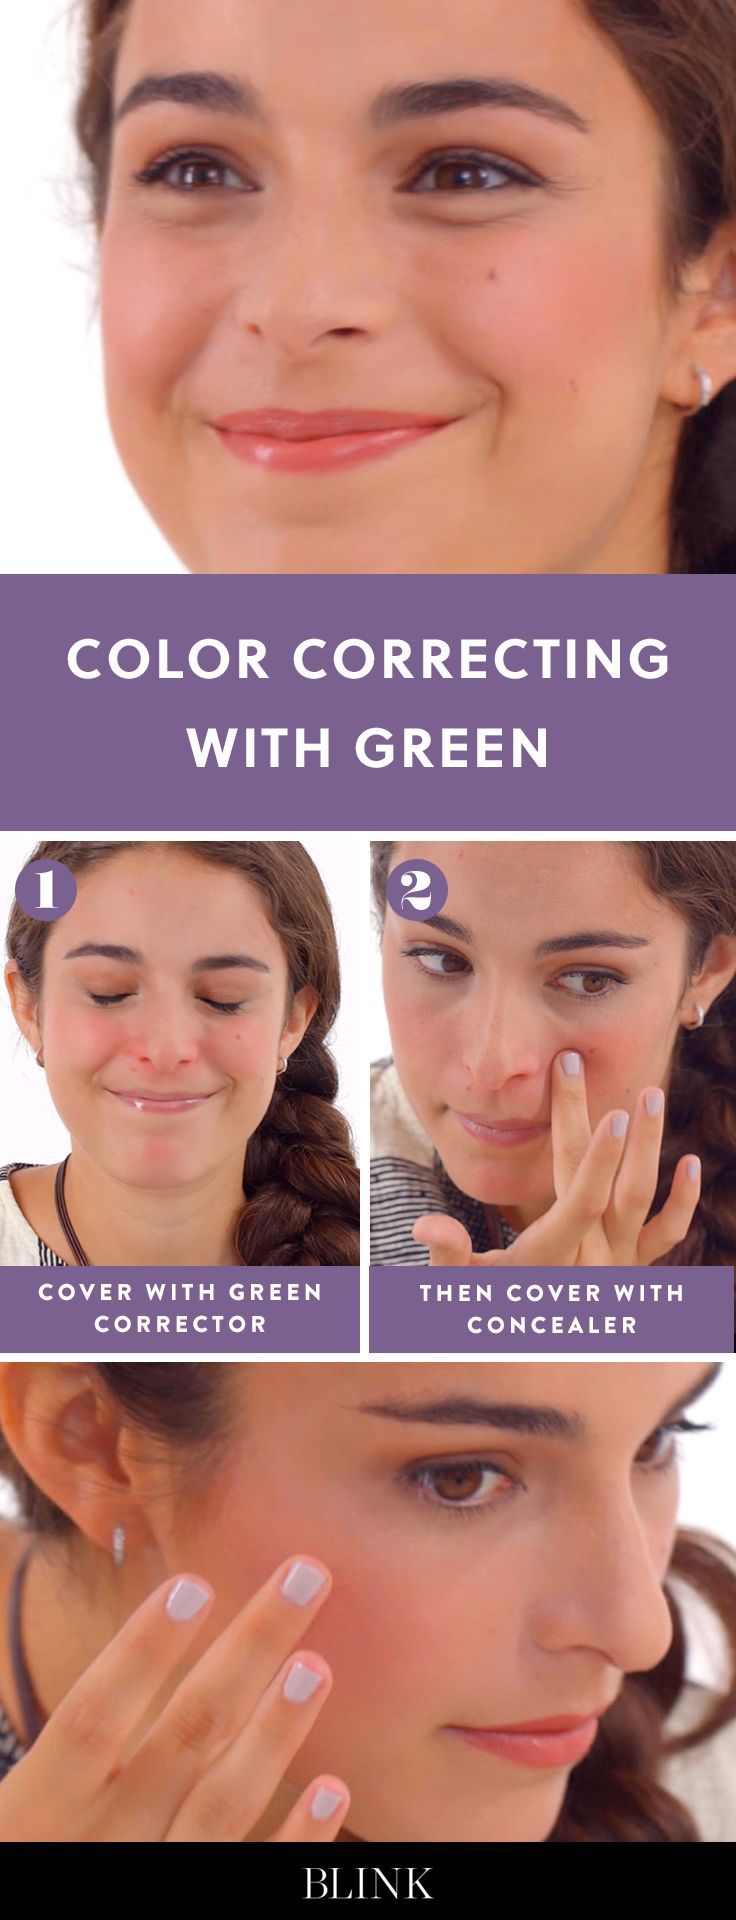 Color Correcting with Green #blinkbeauty #colorcorrecting #makeuptutorial